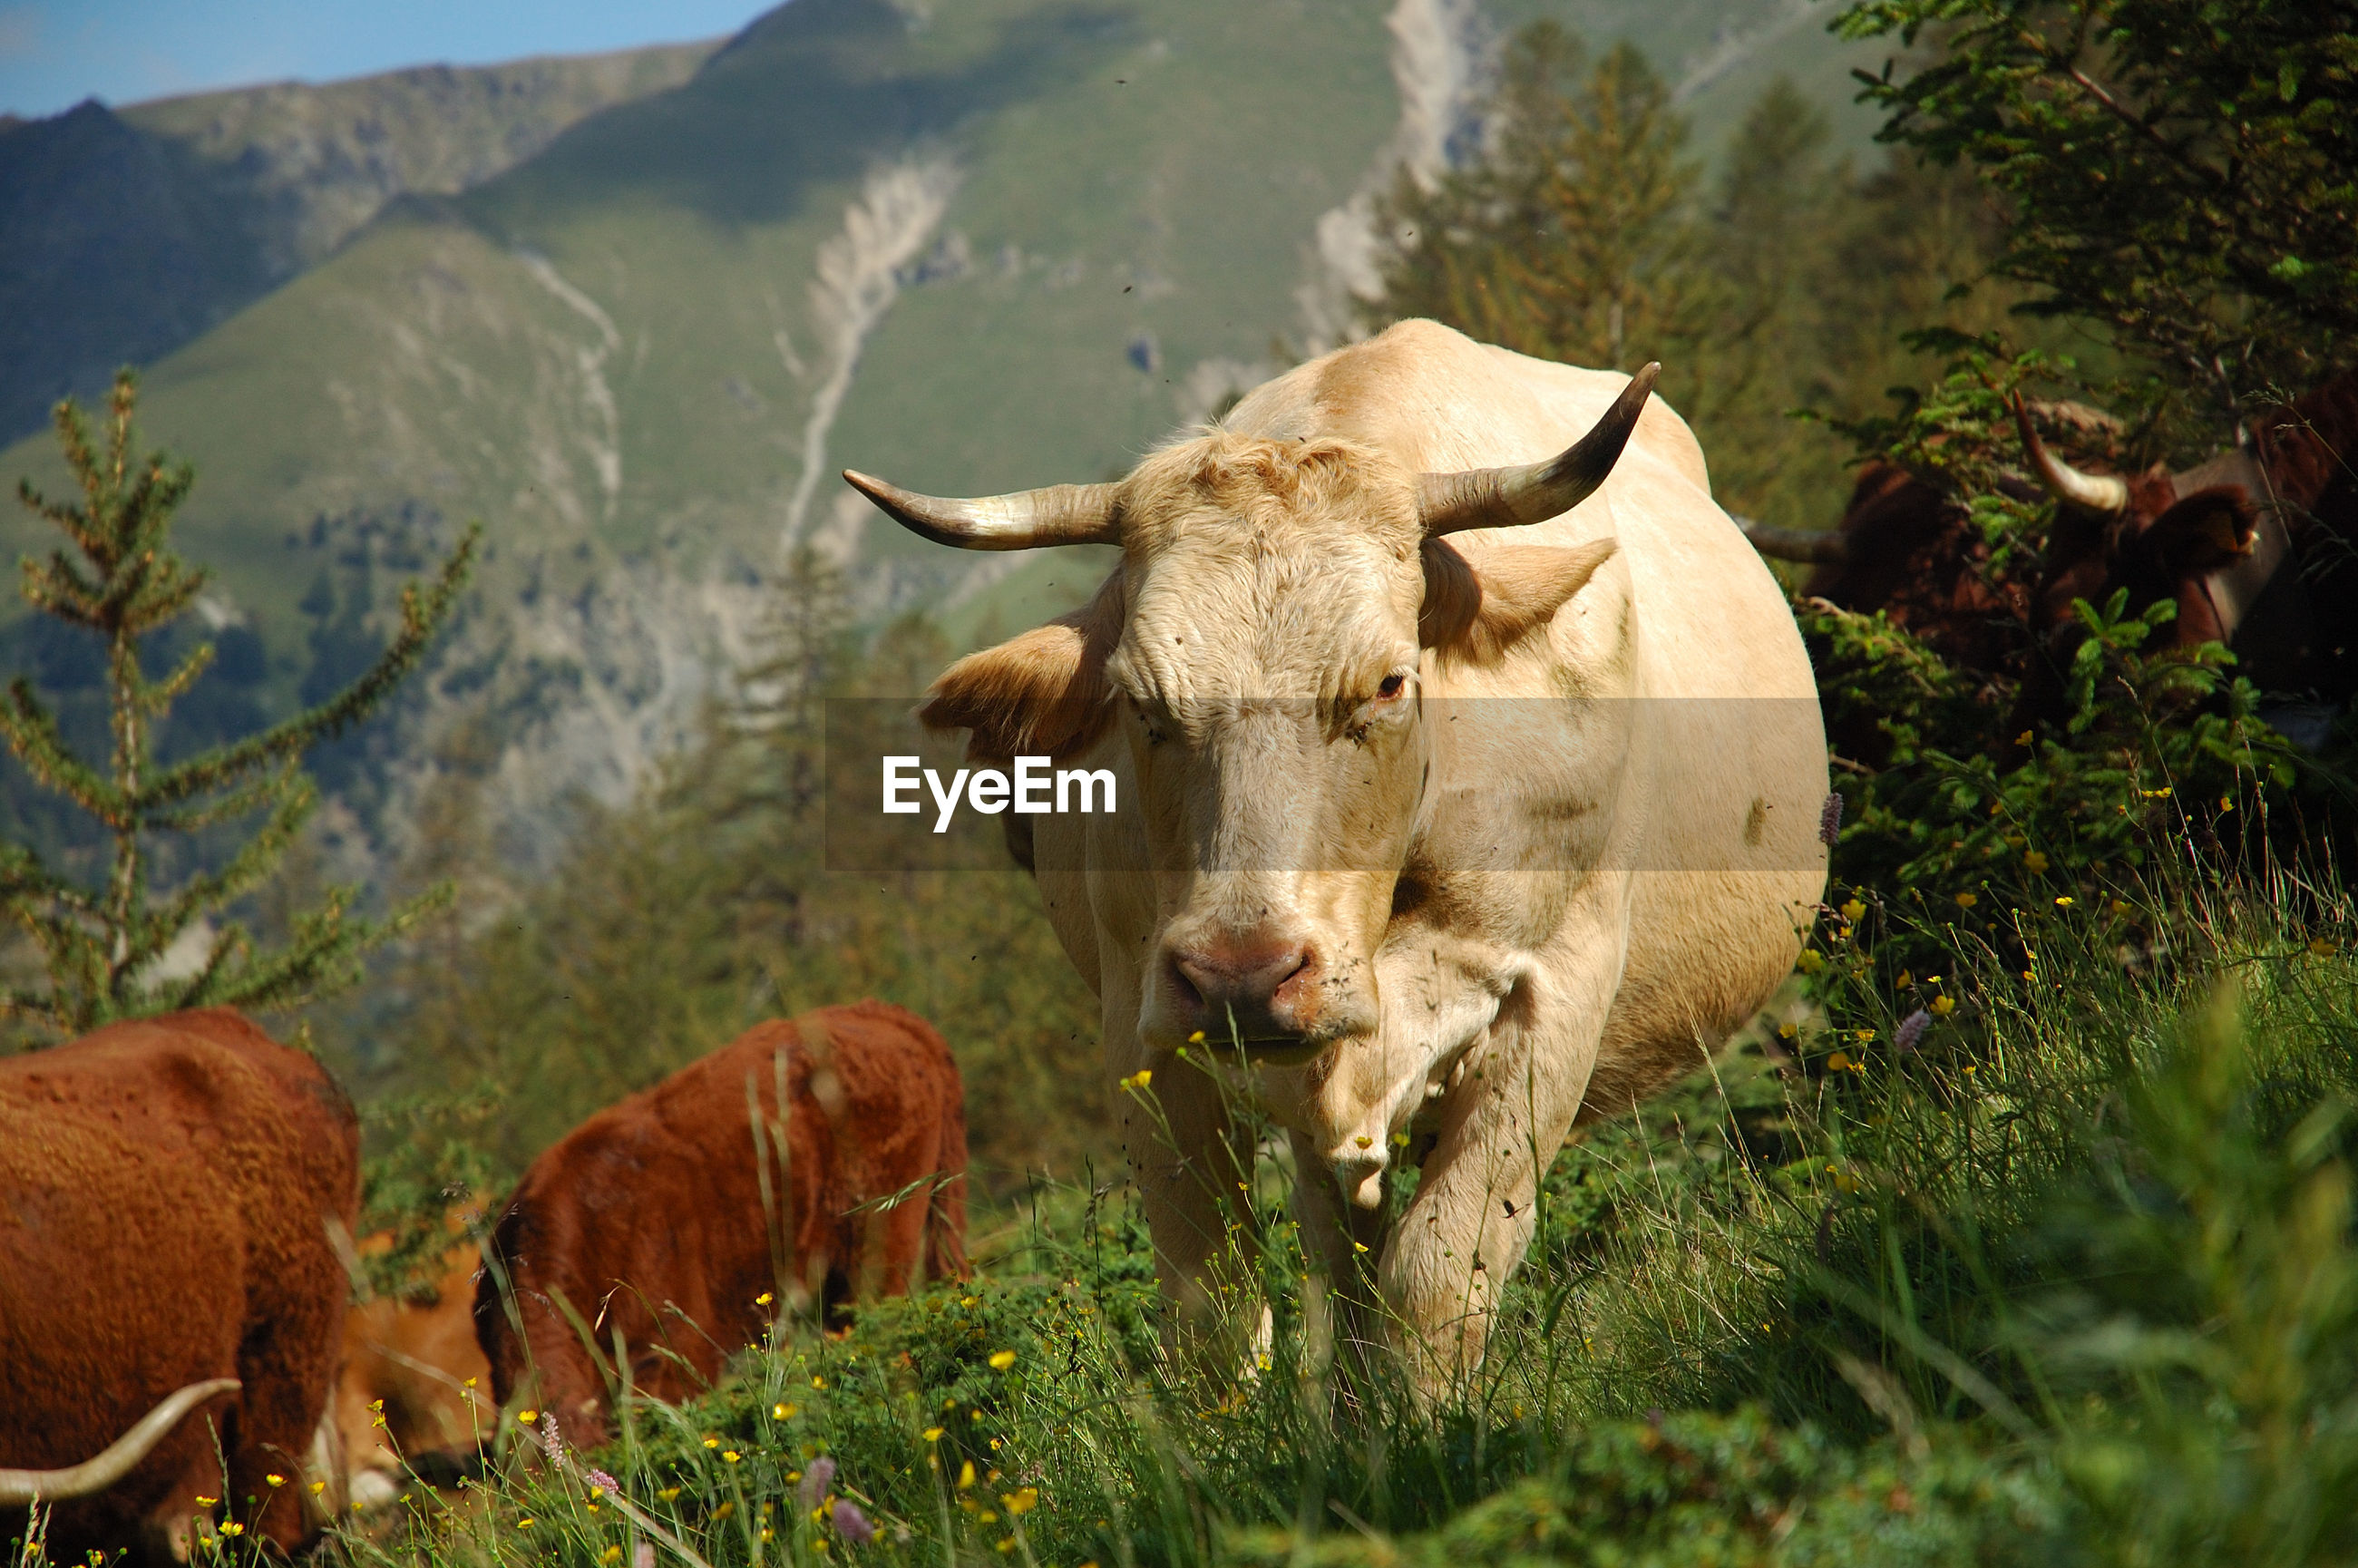 VIEW OF COW ON FIELD